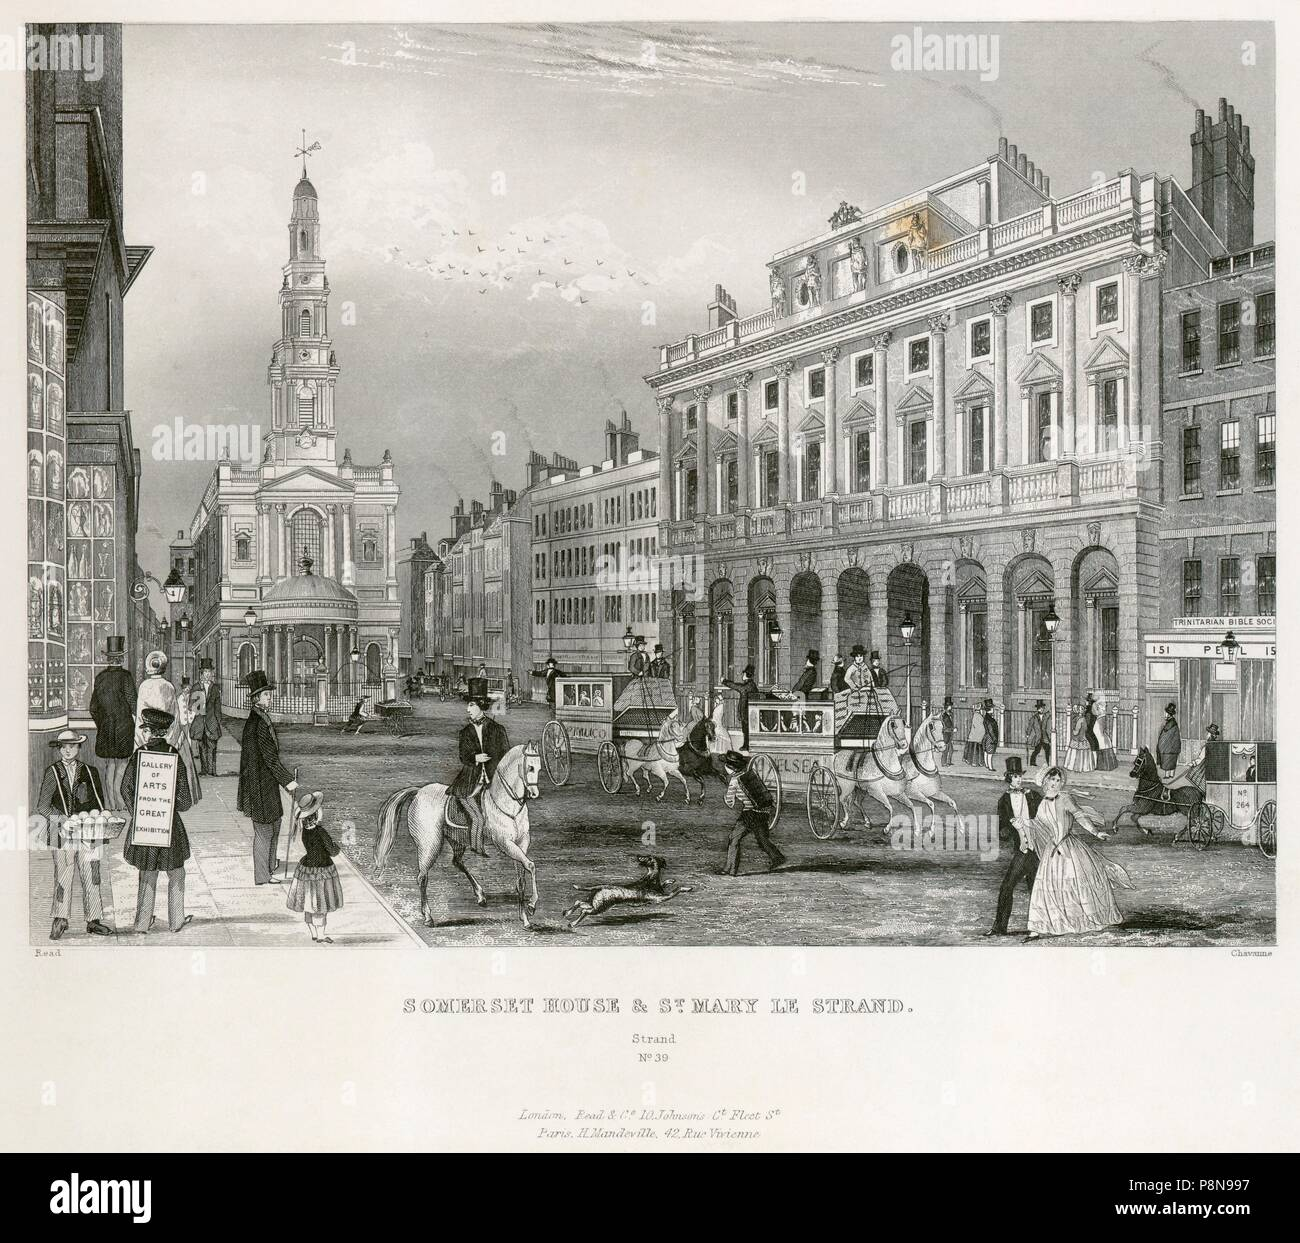 The Strand, Westminster, London, mid 19th century. View showing Somerset House and the Church of St Mary le Strand. From the Mayson Beeton Collection. - Stock Image